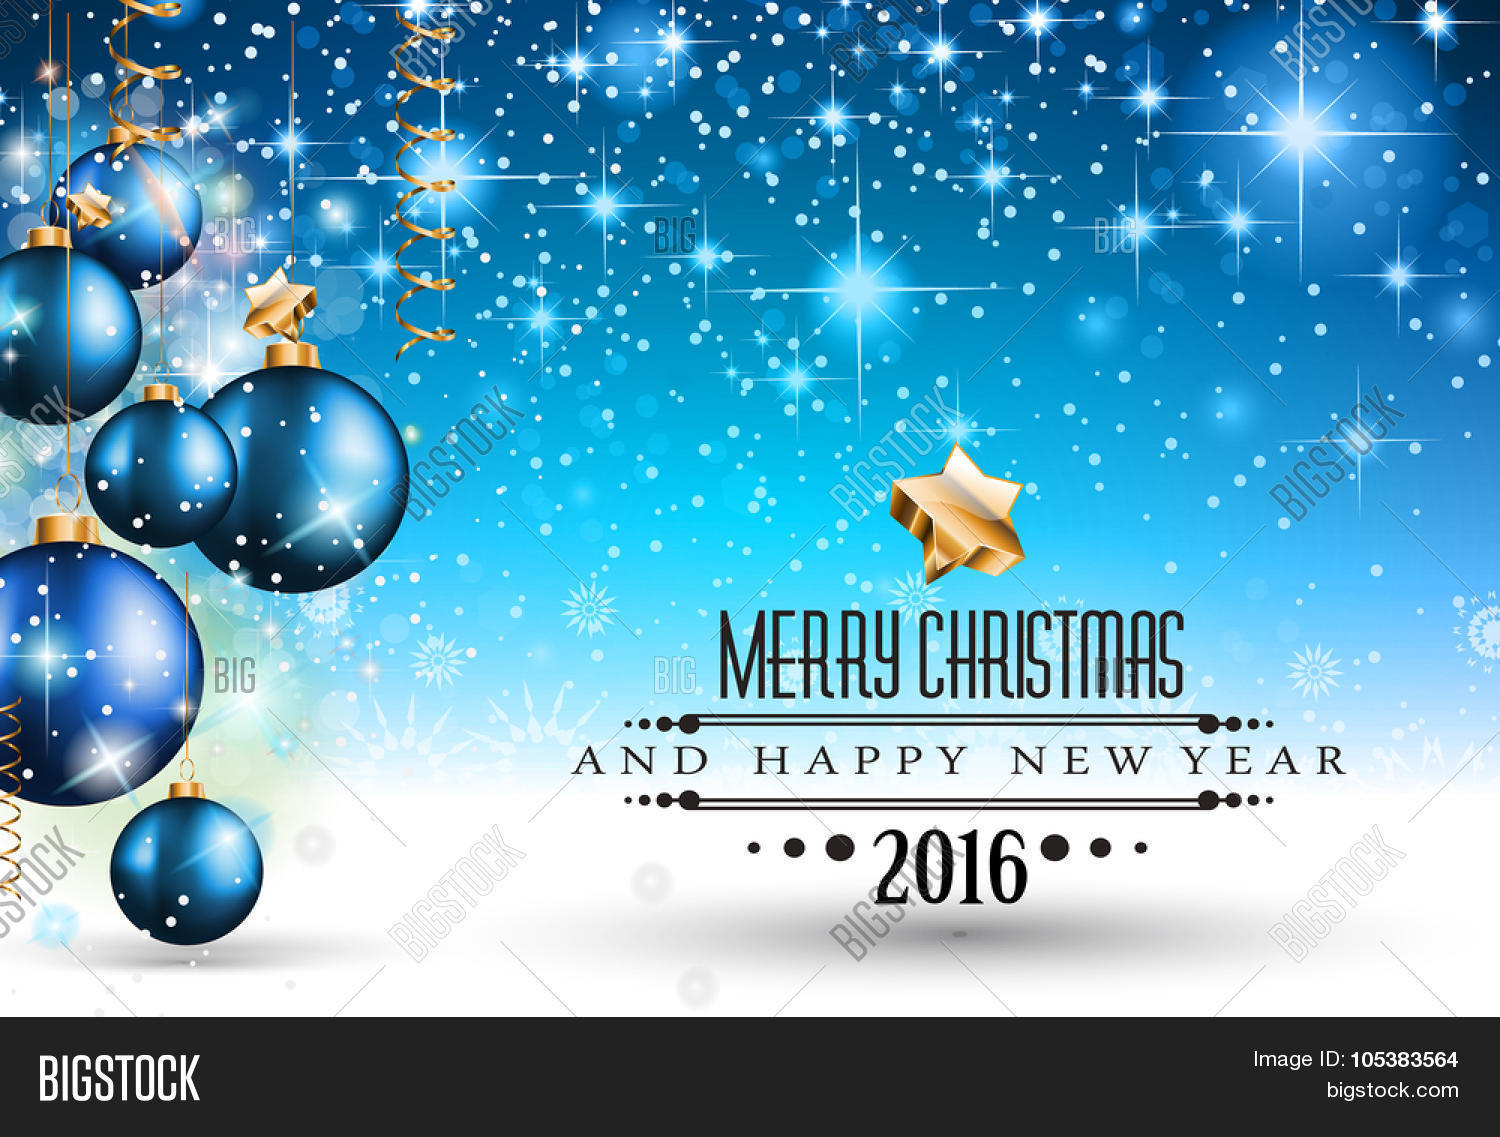 christmas and happy new year party flyer complete layout 2016 christmas and happy new year party flyer complete layout space for text for